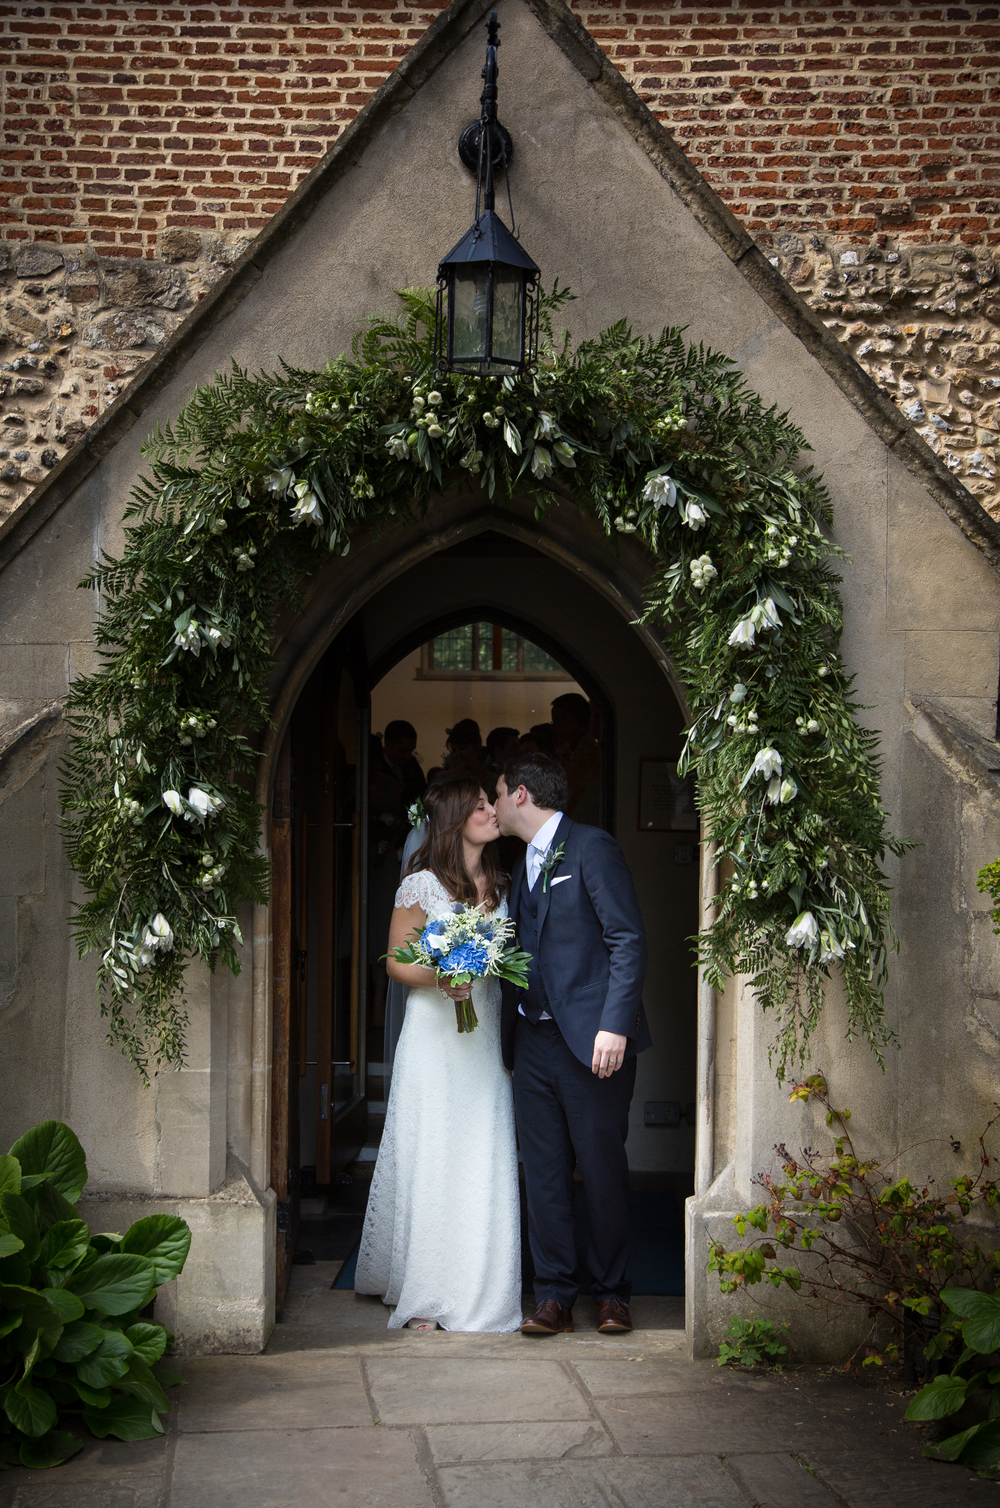 st-mary's-church-barnes-london-uk-destination-wedding-photography-Adam-Rowley